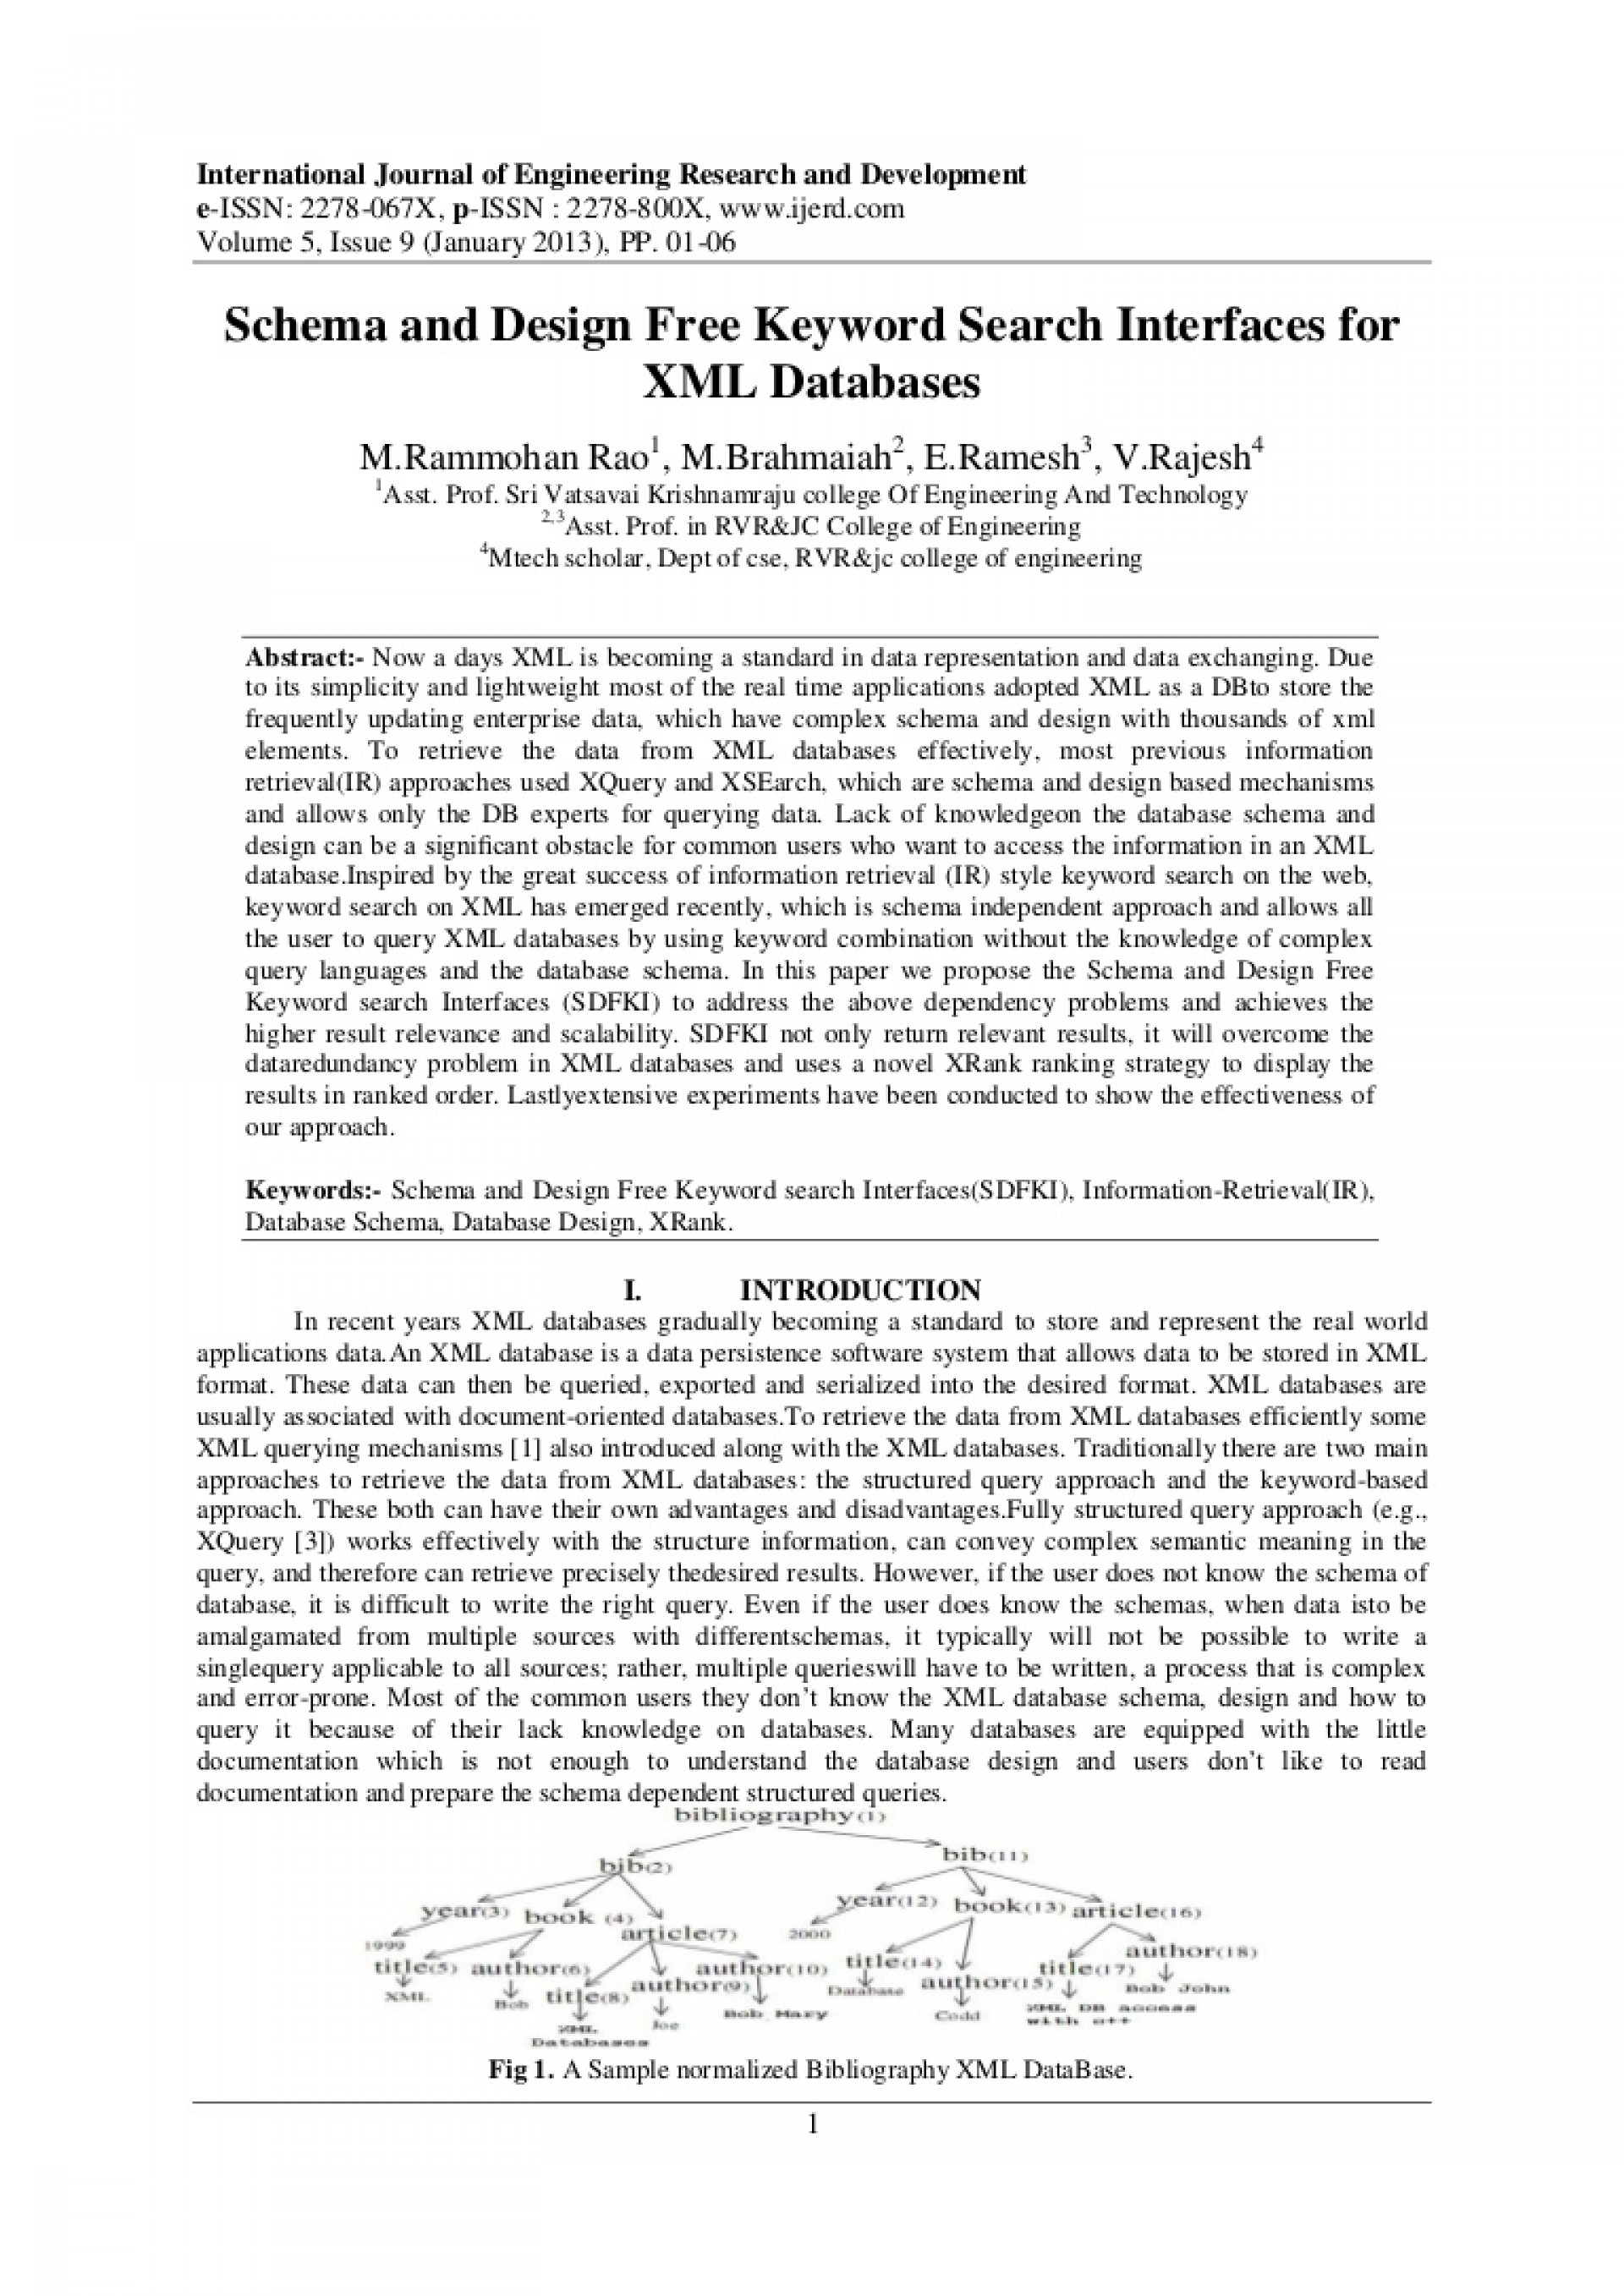 005 Phpapp02 Thumbnail Research Paper Sensational Database Academic Used By Japanese National Organizations Papers On Distributed Security Medical 1920